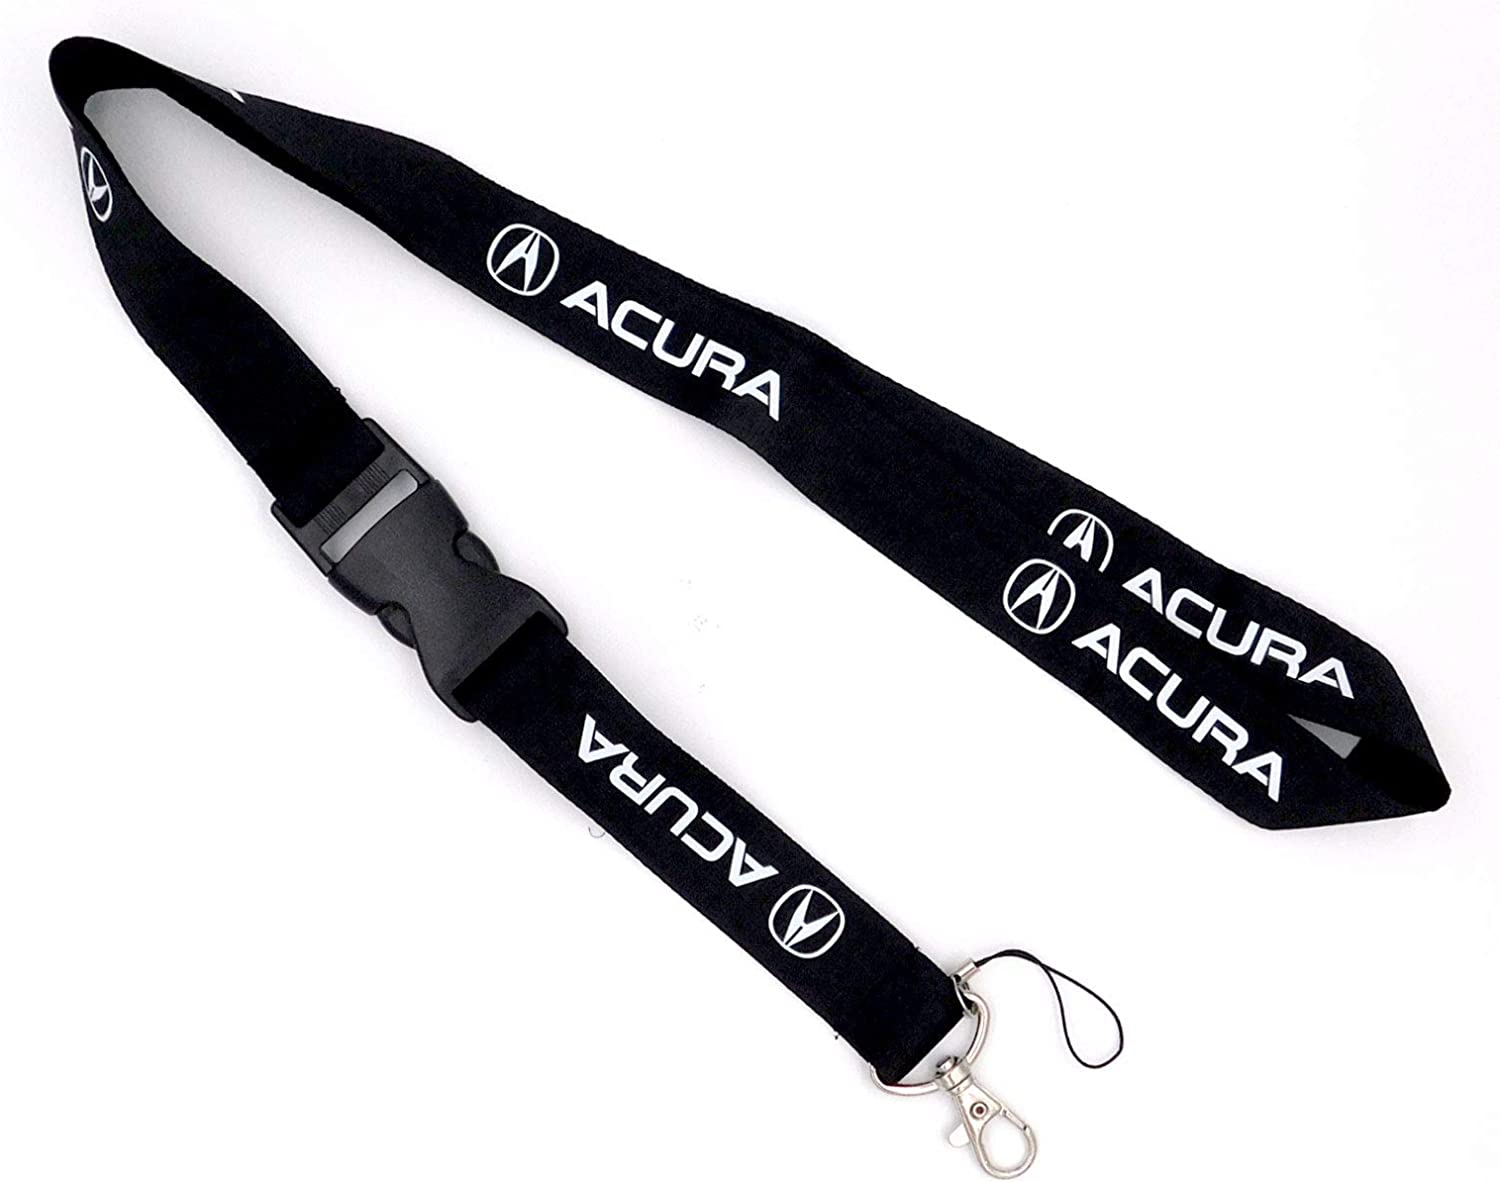 Keychain Key car Logo Chain Black Lanyard Clip with Webbing Strap Quick Release Buckle Acura